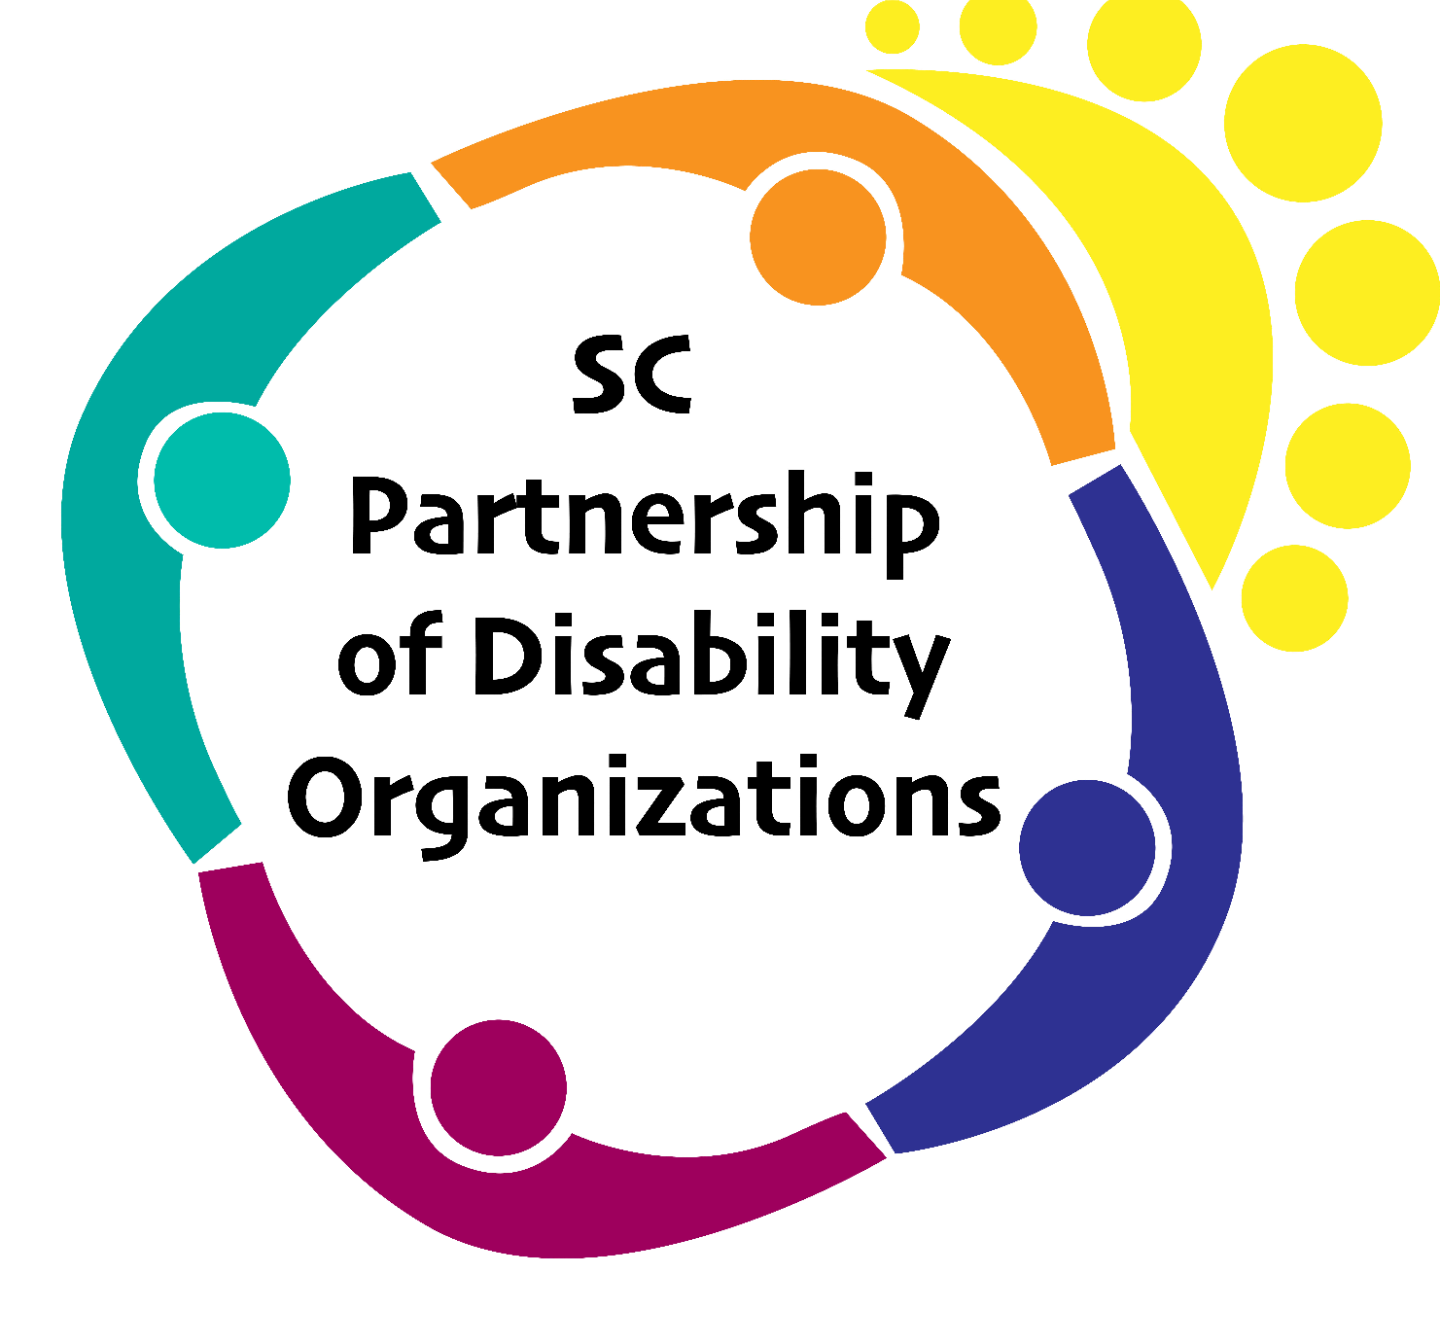 SC Partnership of Disability Logo